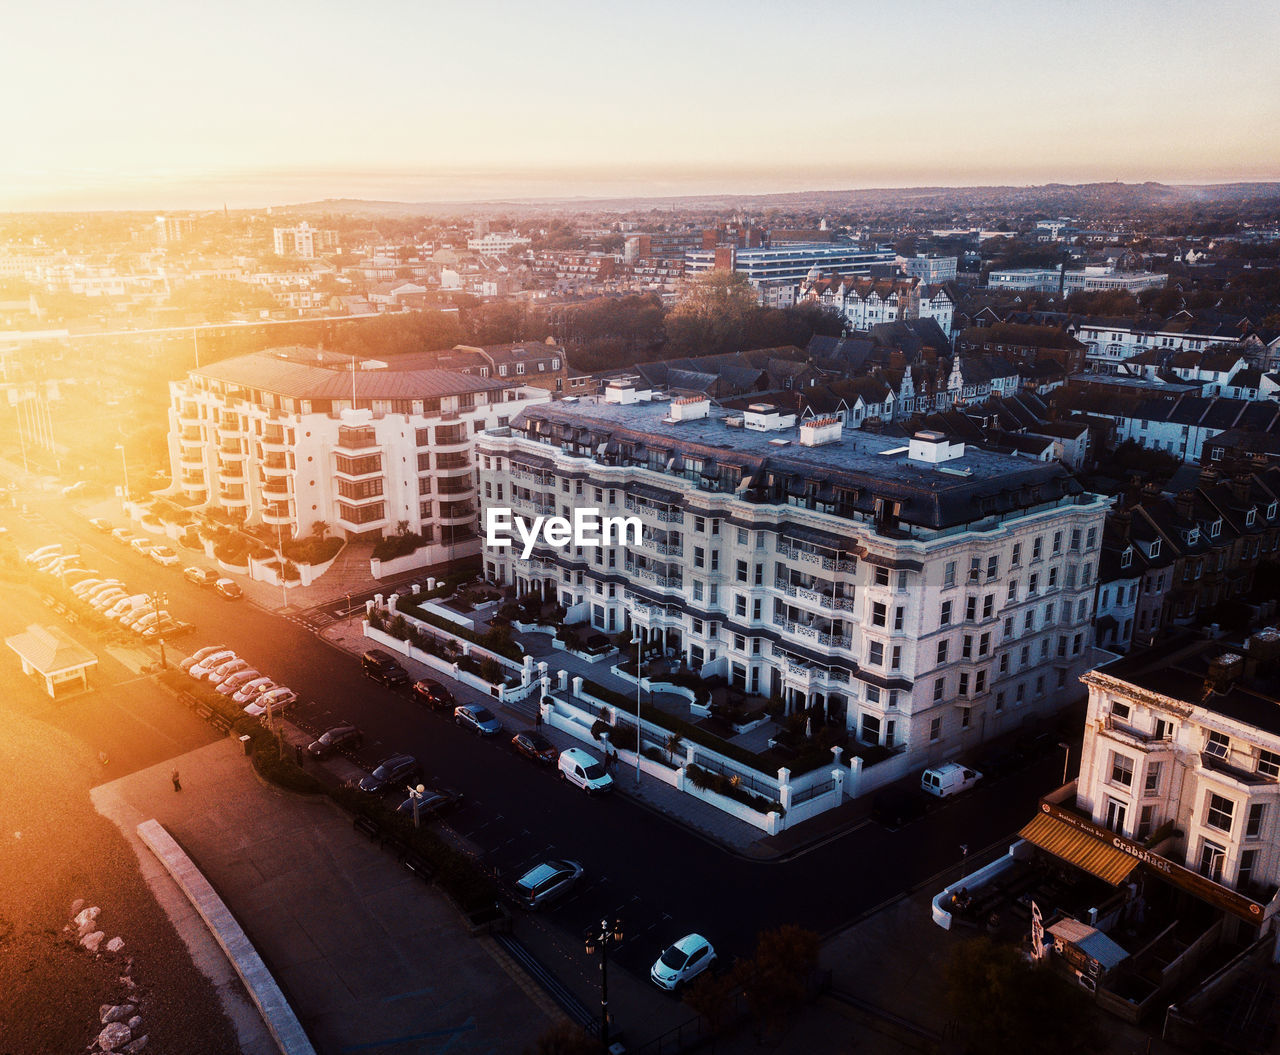 building exterior, architecture, city, built structure, cityscape, high angle view, sky, building, nature, street, transportation, no people, residential district, city life, road, mode of transportation, land vehicle, sunset, outdoors, office building exterior, skyscraper